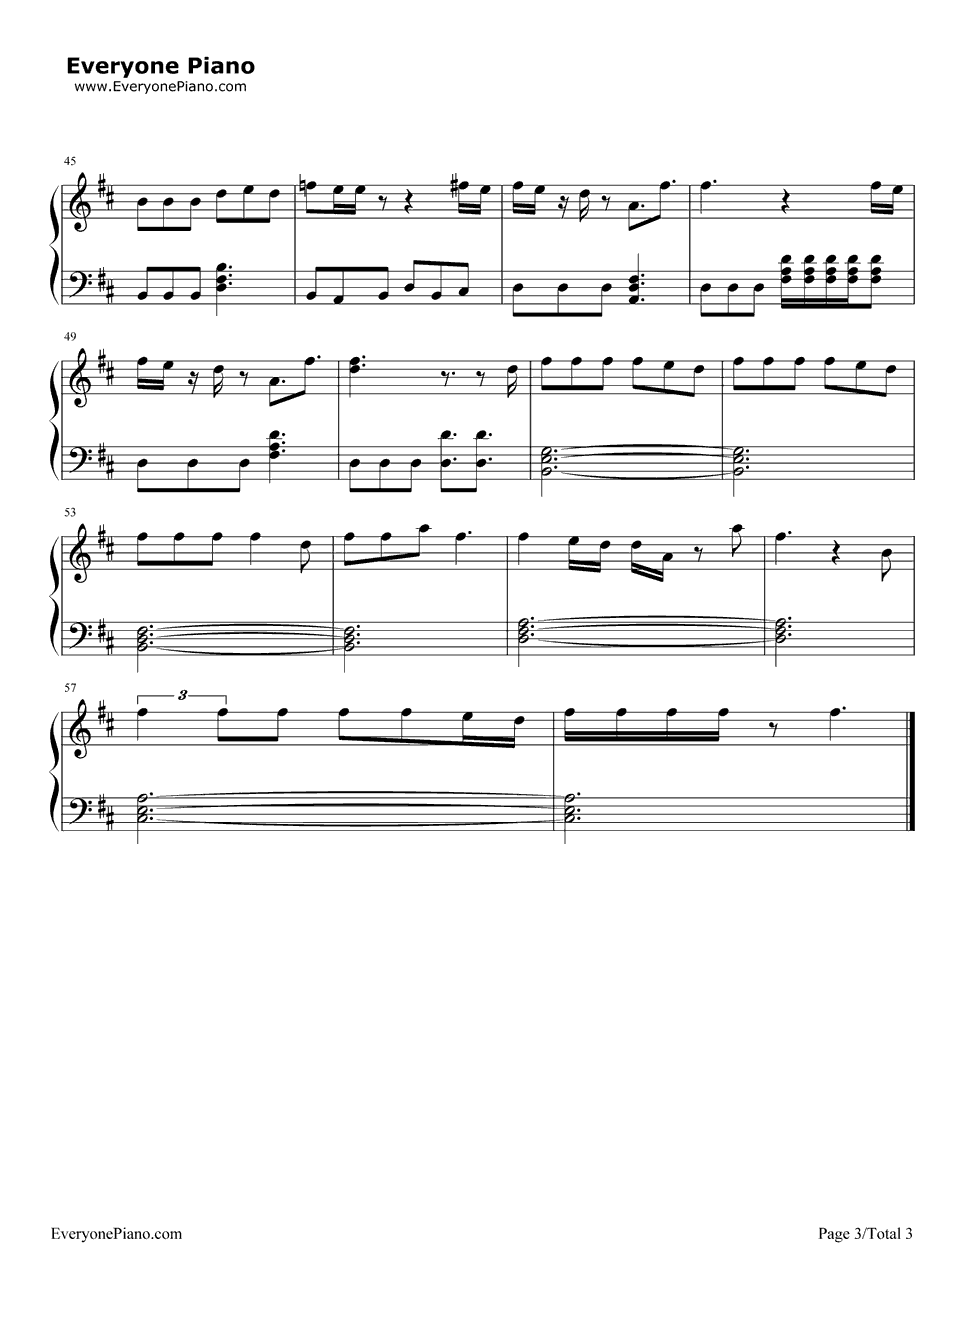 Powerful-Major Lazer Stave Preview 3-Free Piano Sheet Music u0026 Piano Chords